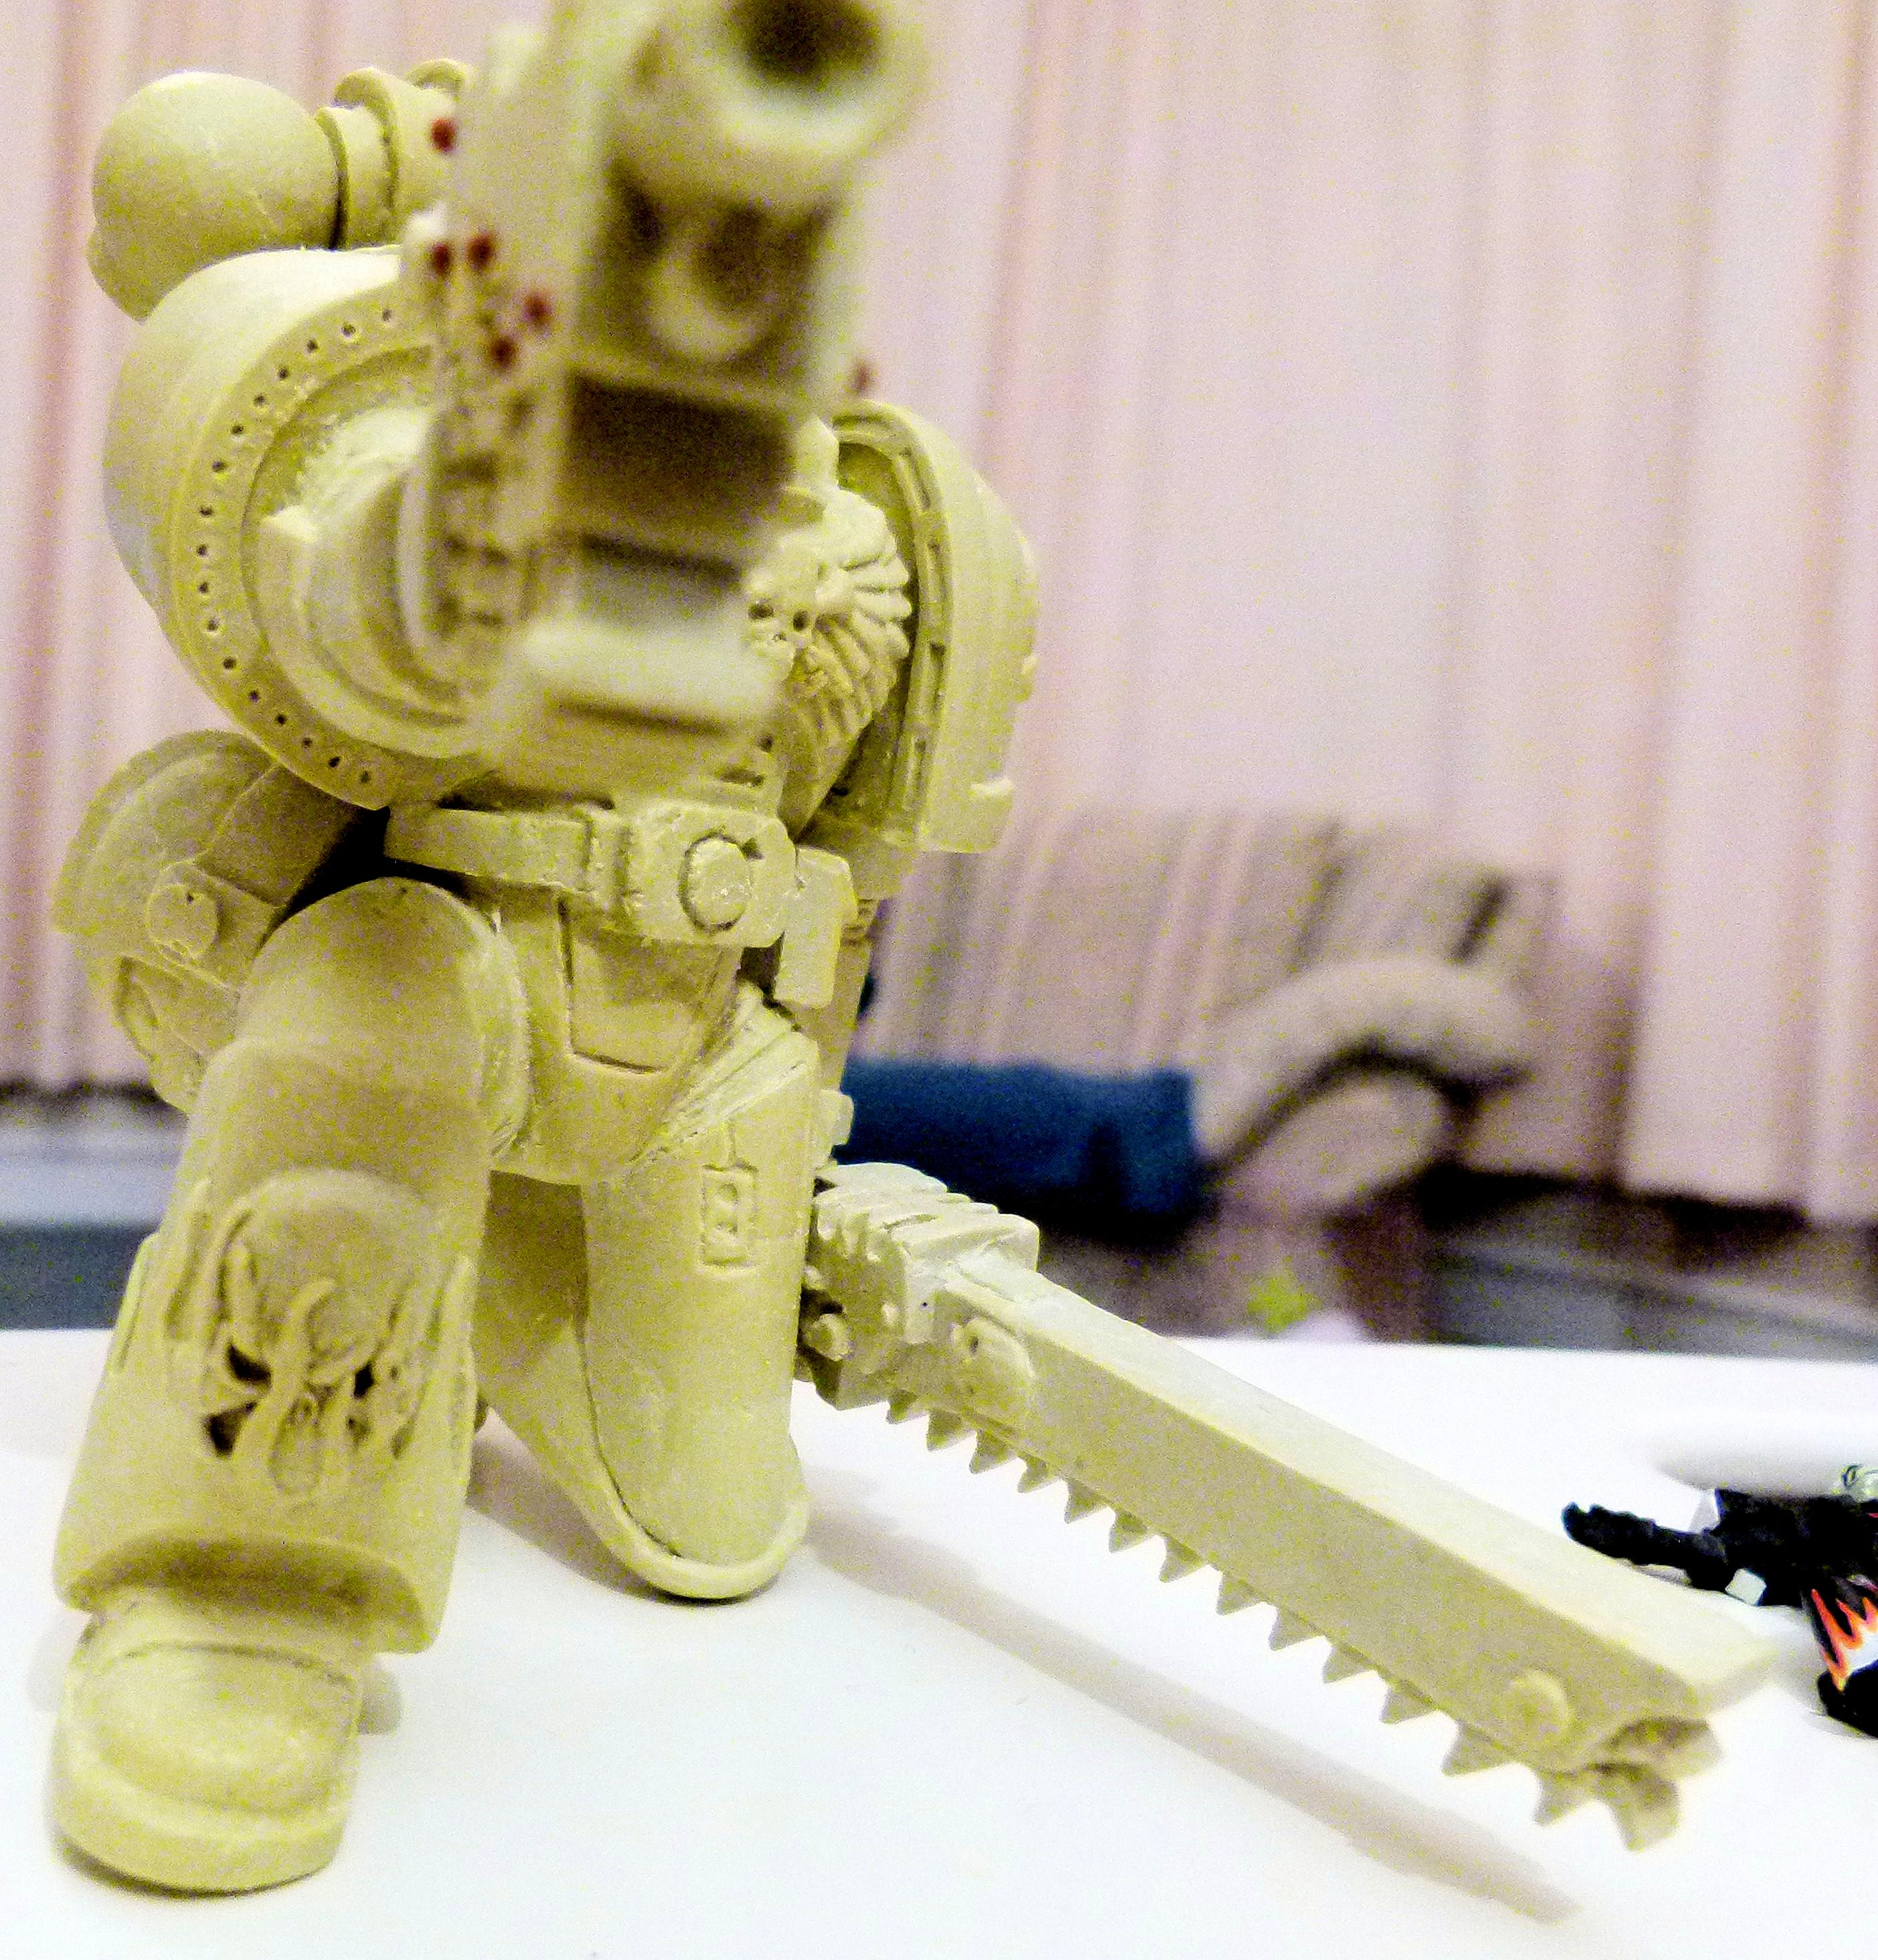 Action Figure, Large, Space Marines